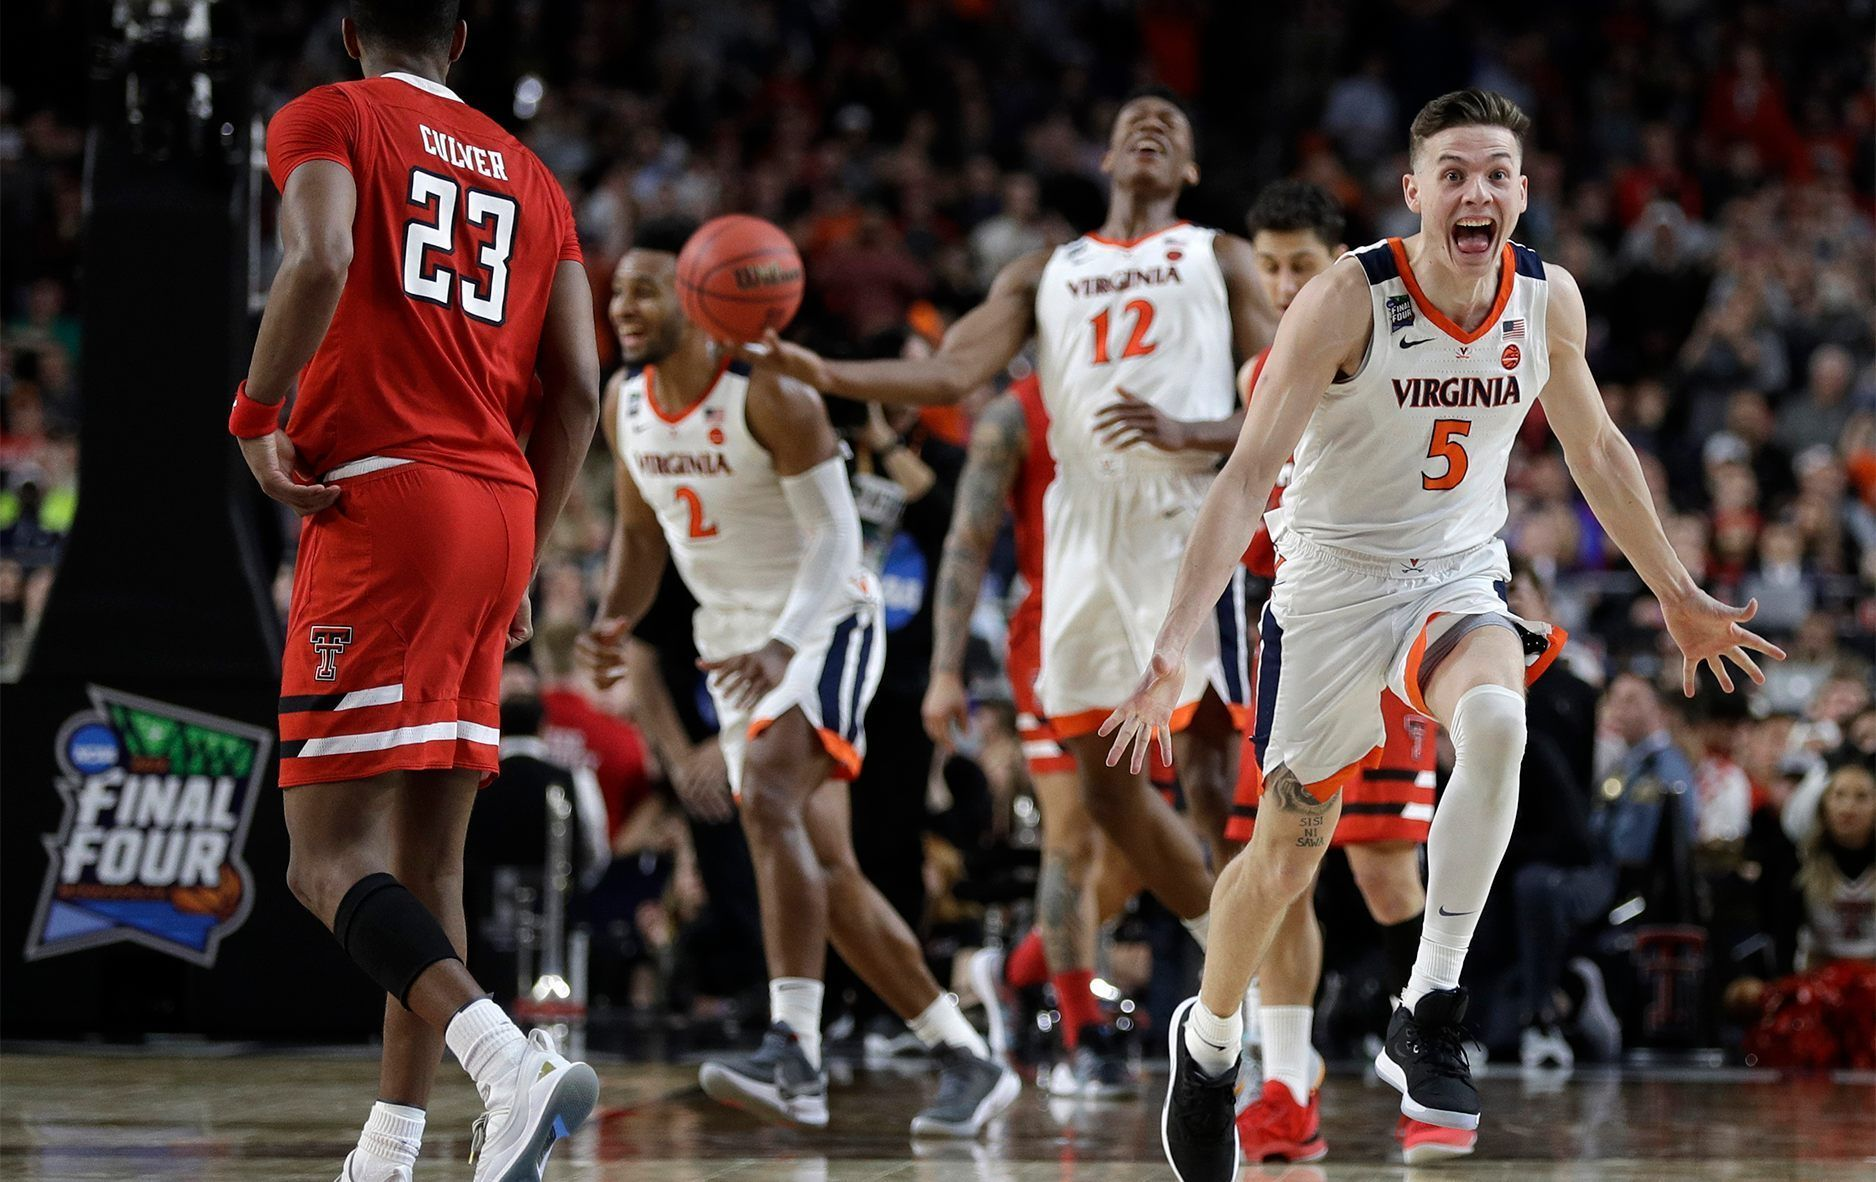 Virginia basketball latest champions to decline White